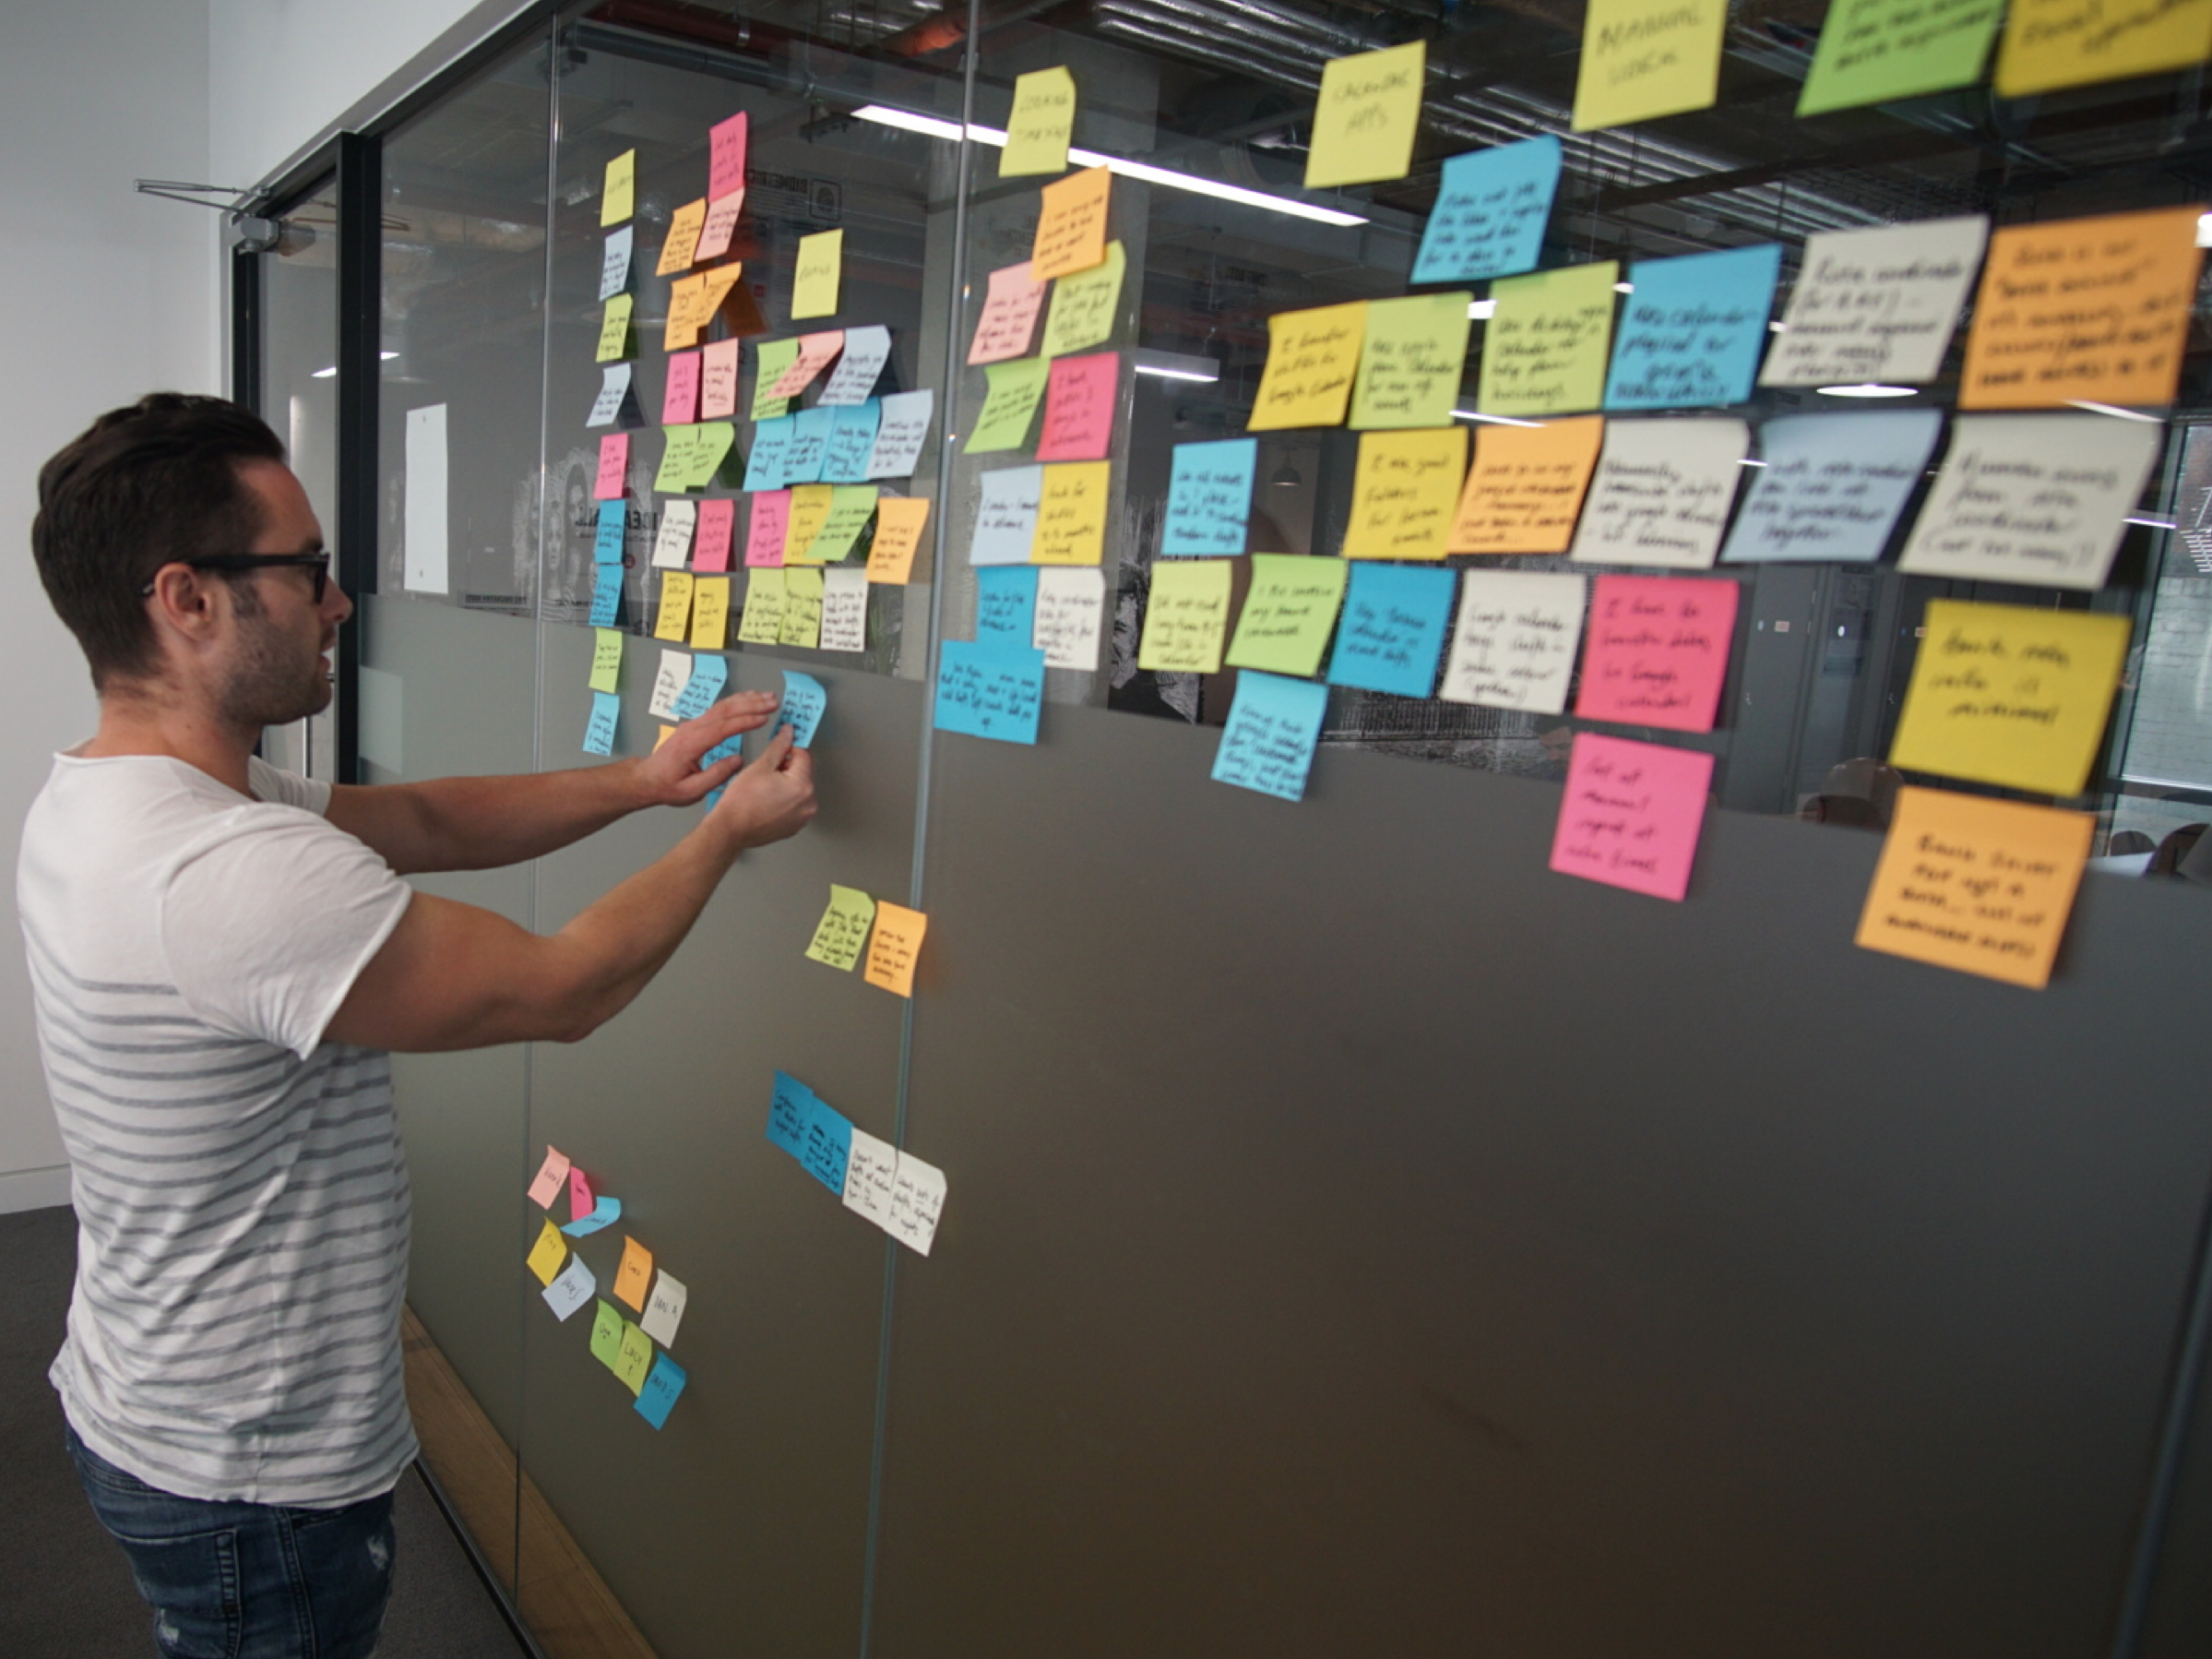 Affinity mapping - We used affinity mapping to explore patterns that arose from the interviews. From the affinity map we created a UX persona and an experience map that further guided the process. Let's start with the persona.